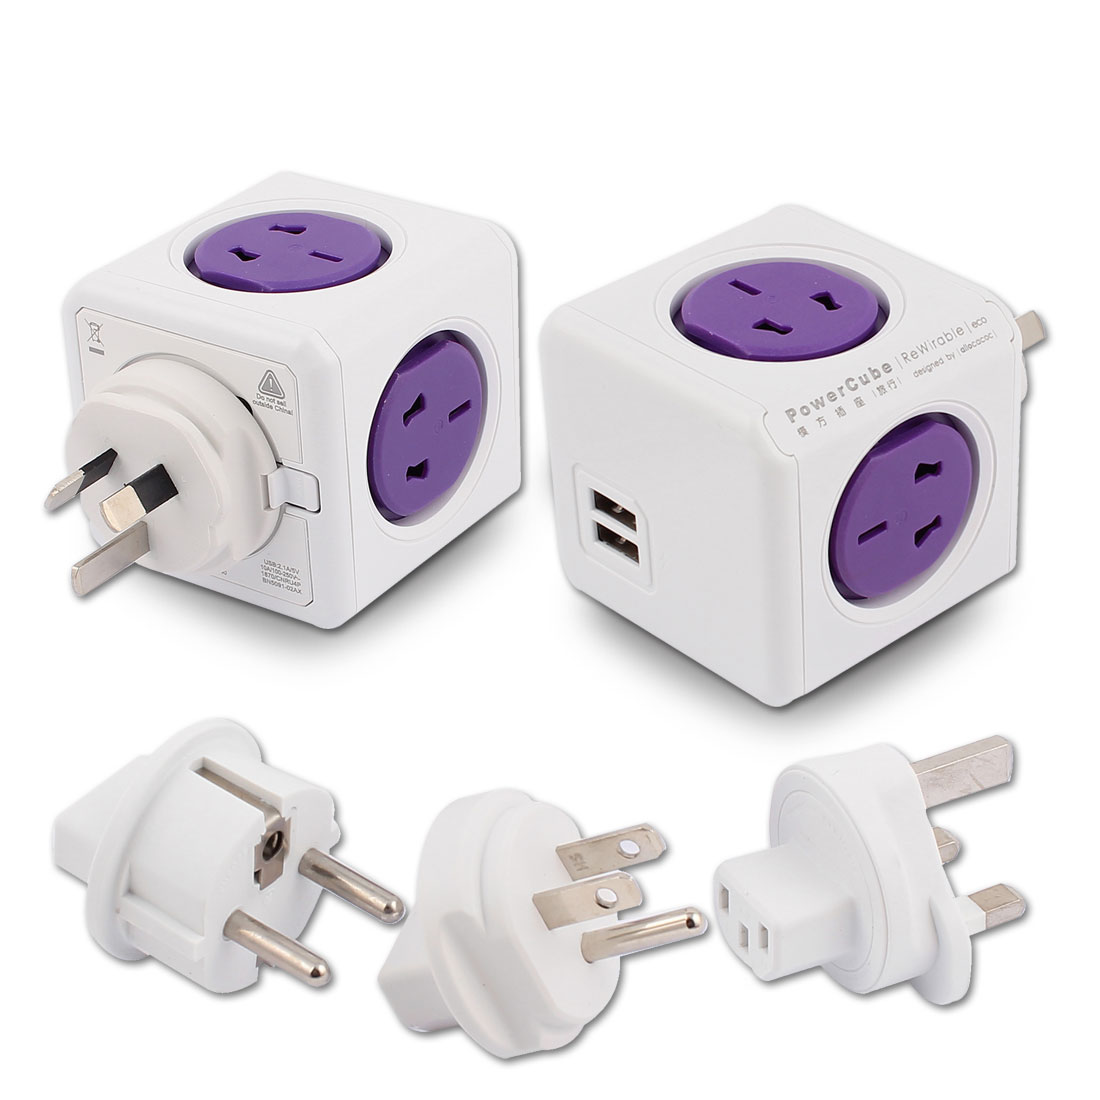 AC 100V-250V AU EU UK US Plug Desktop Cubic Travel 4 Power AU US Sockets 2 USB Violet